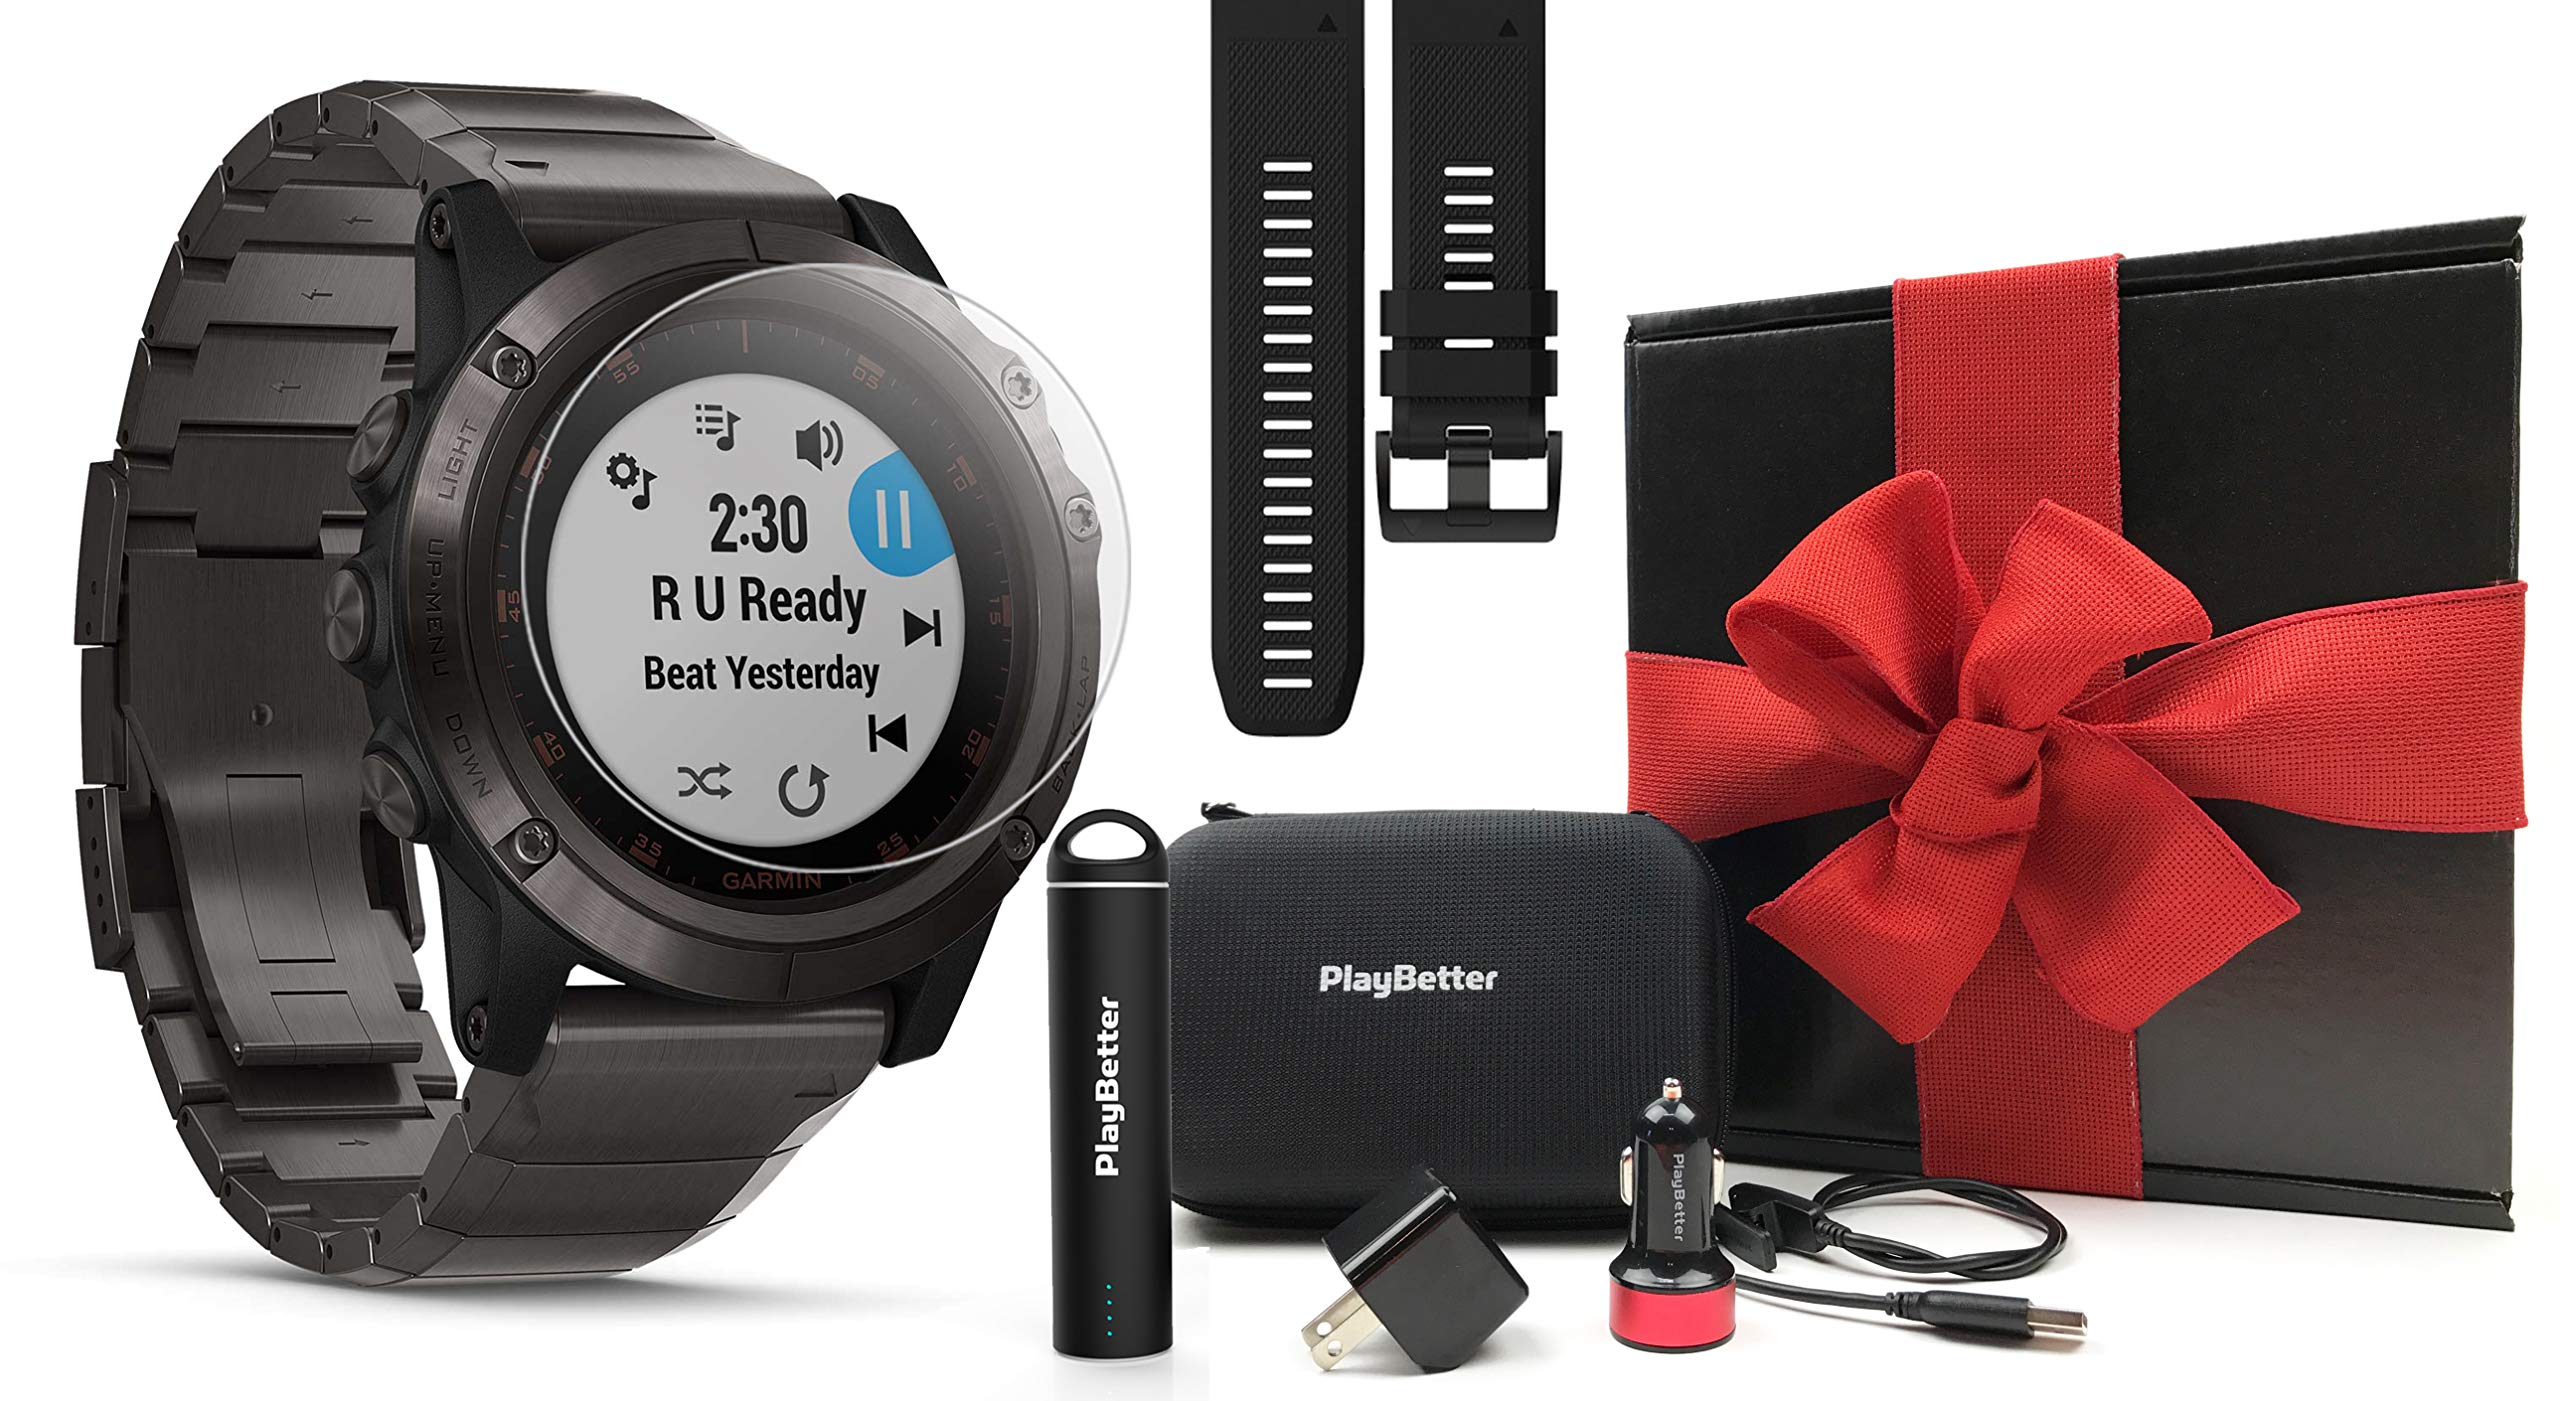 Garmin fenix 5X Plus+ Sapphire Gift Box Bundle | with Screen Protectors, PlayBetter Portable Charger, USB Adapters & Case | Multisport GPS Watch, Maps/ClimbPro, Garmin Pay, Music | Gift Box (Titanium)